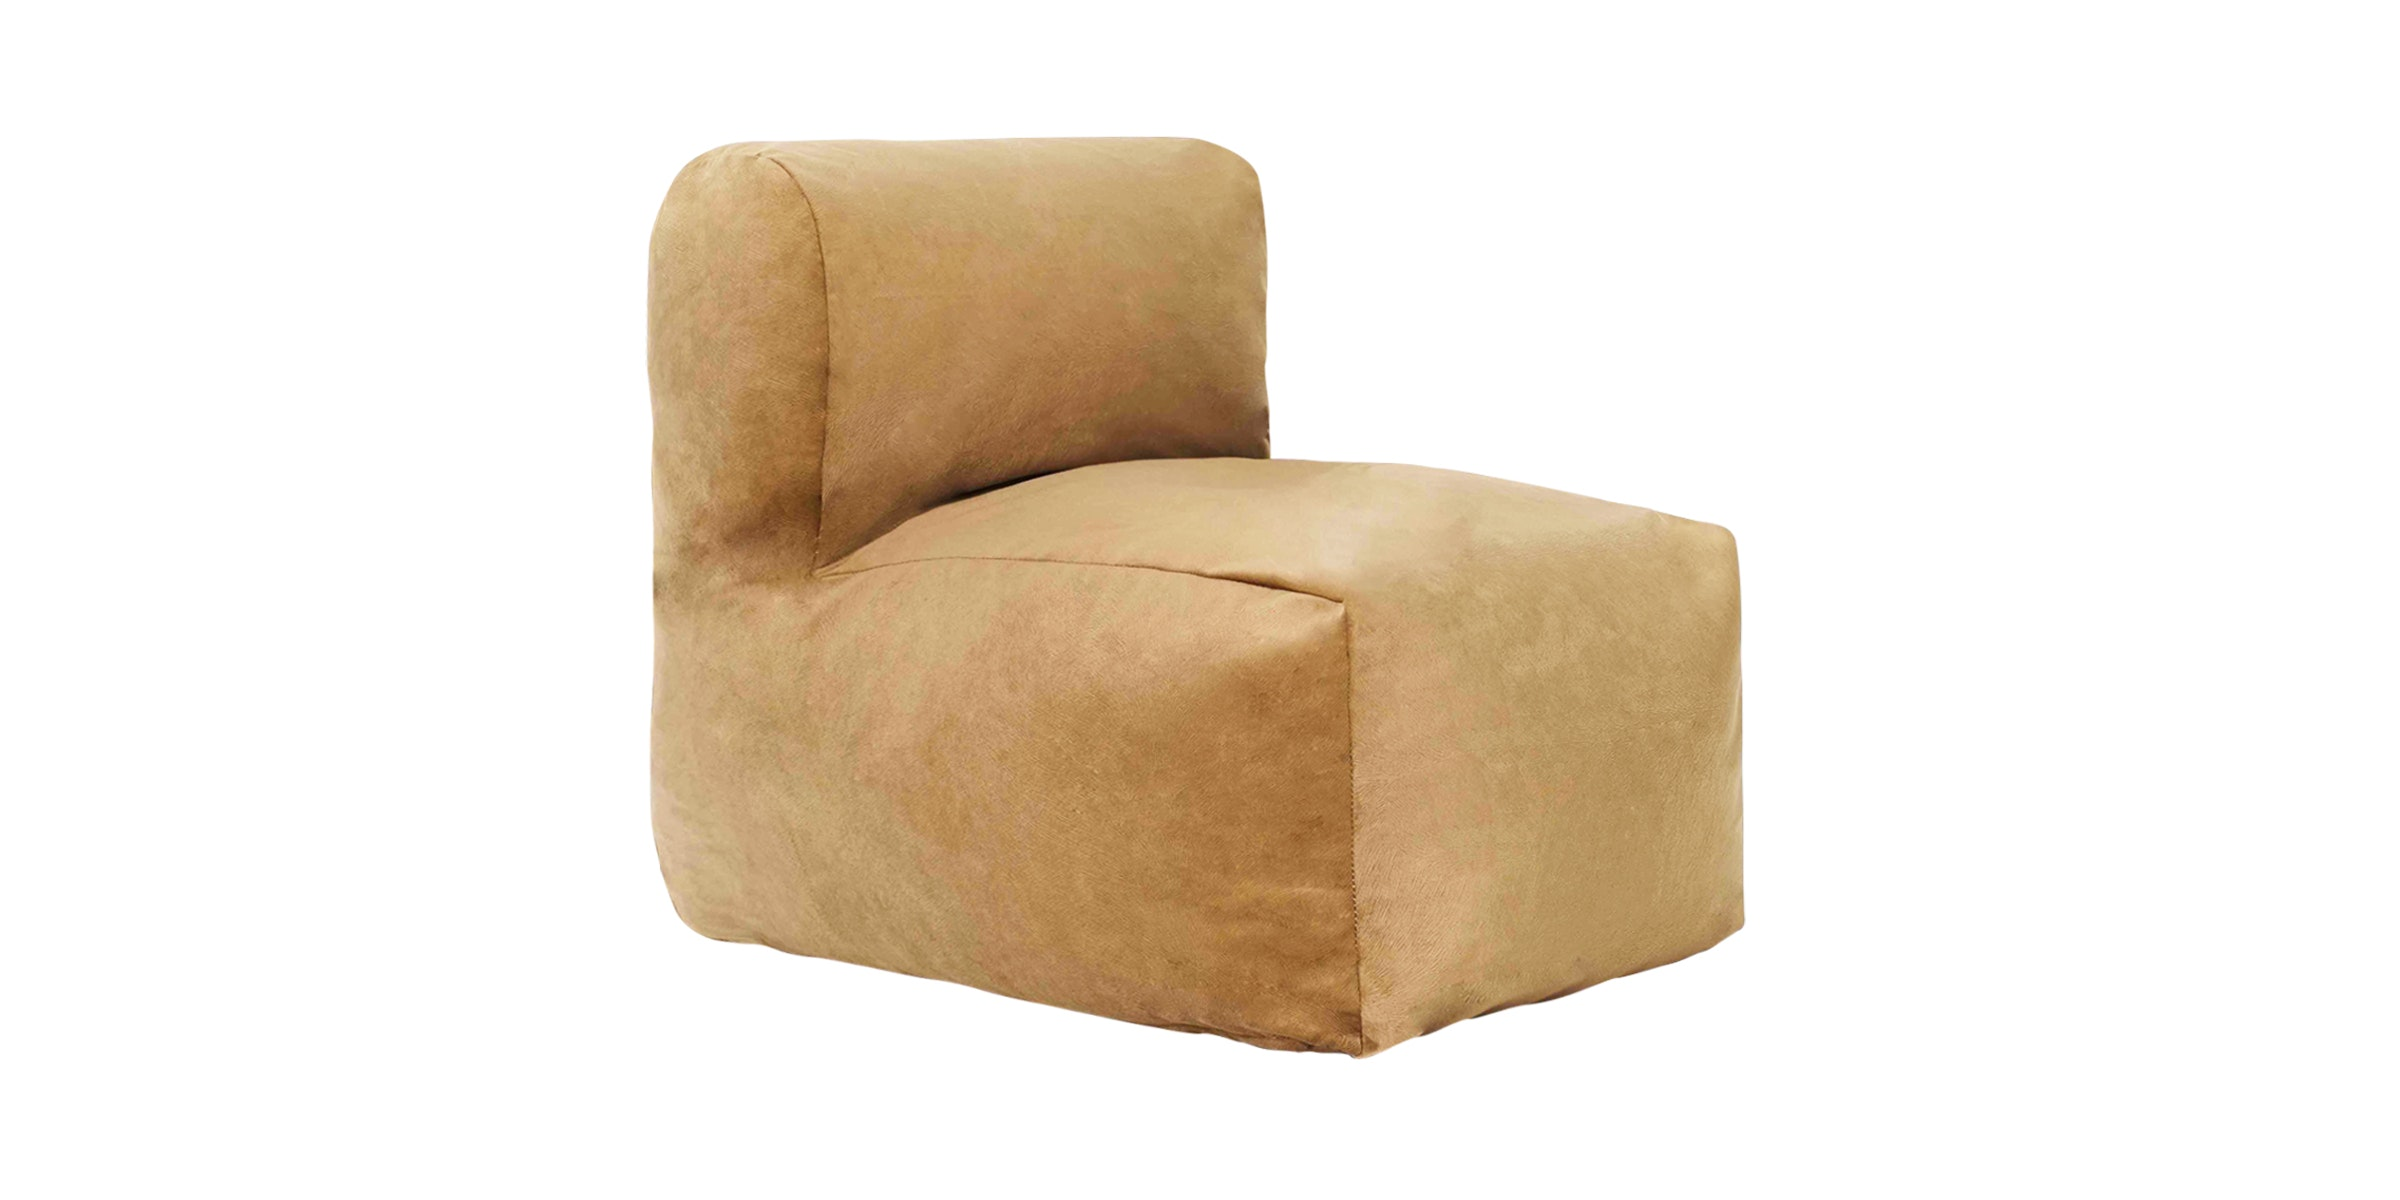 Pouffie Single sofa Bean Bag